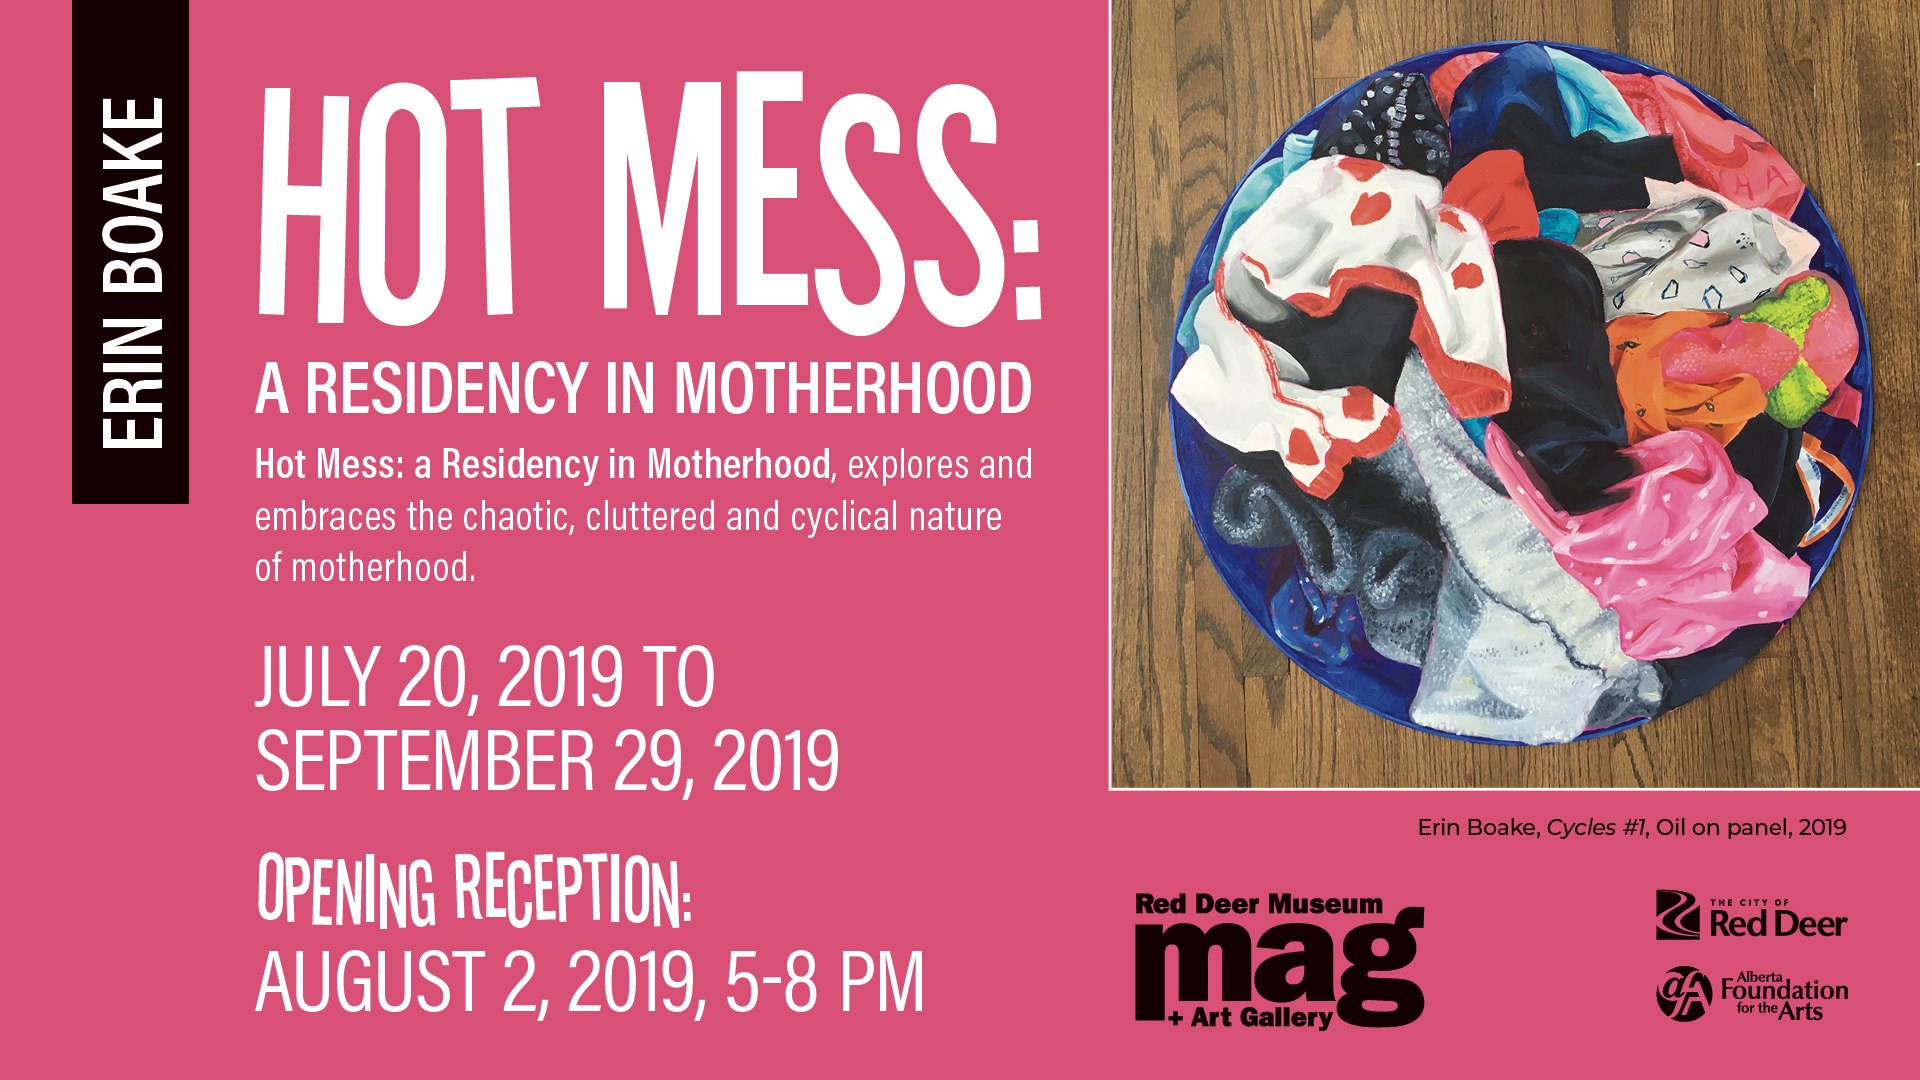 Hot Mess: A Residency in Motherhood